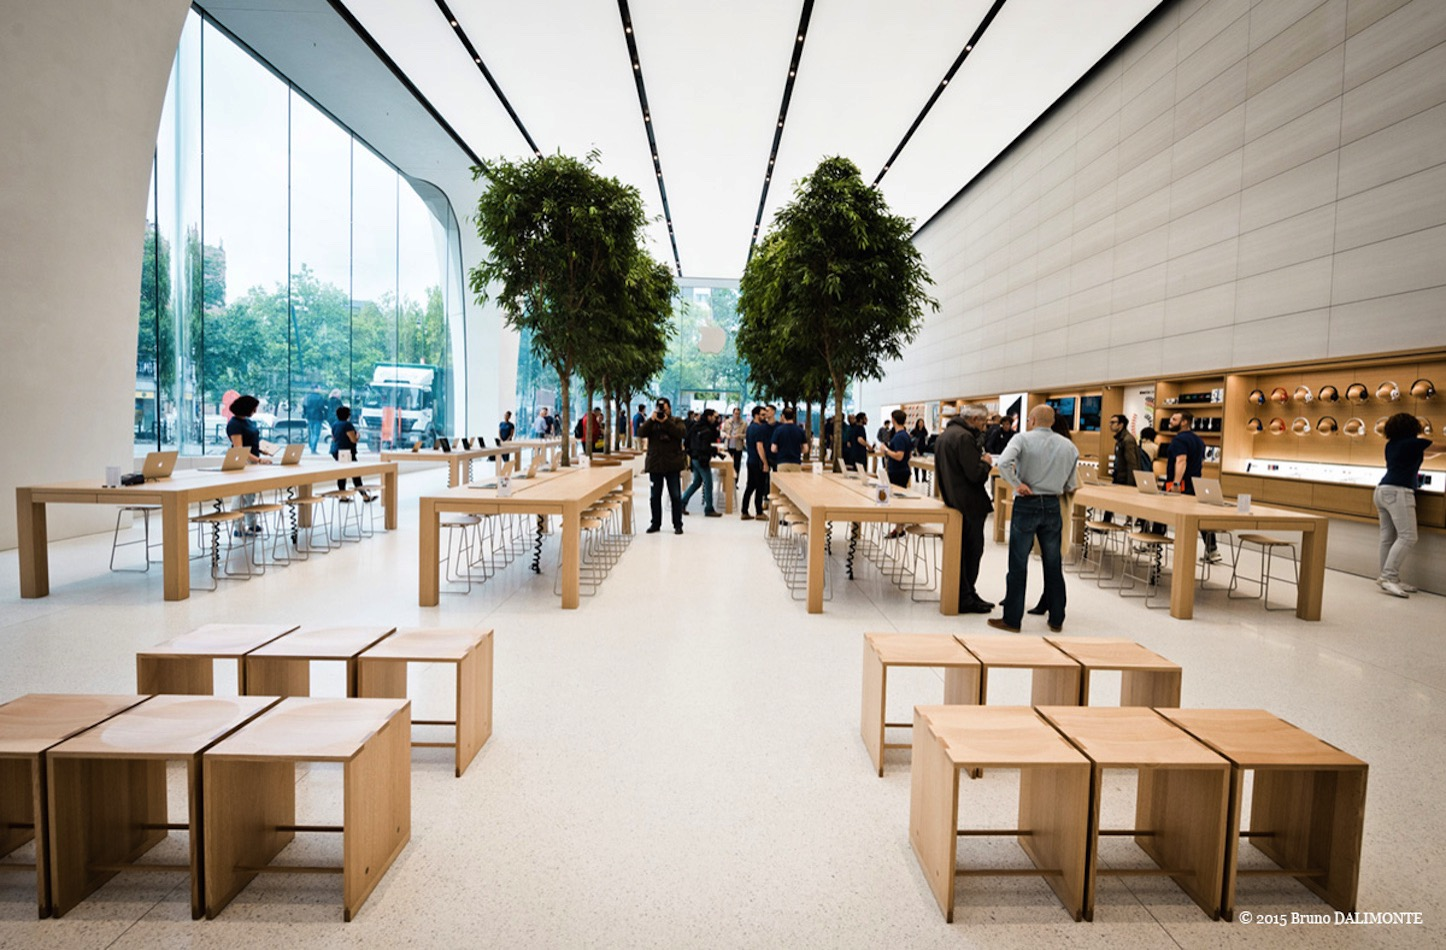 jony-ive-designed-apple-store.jpg